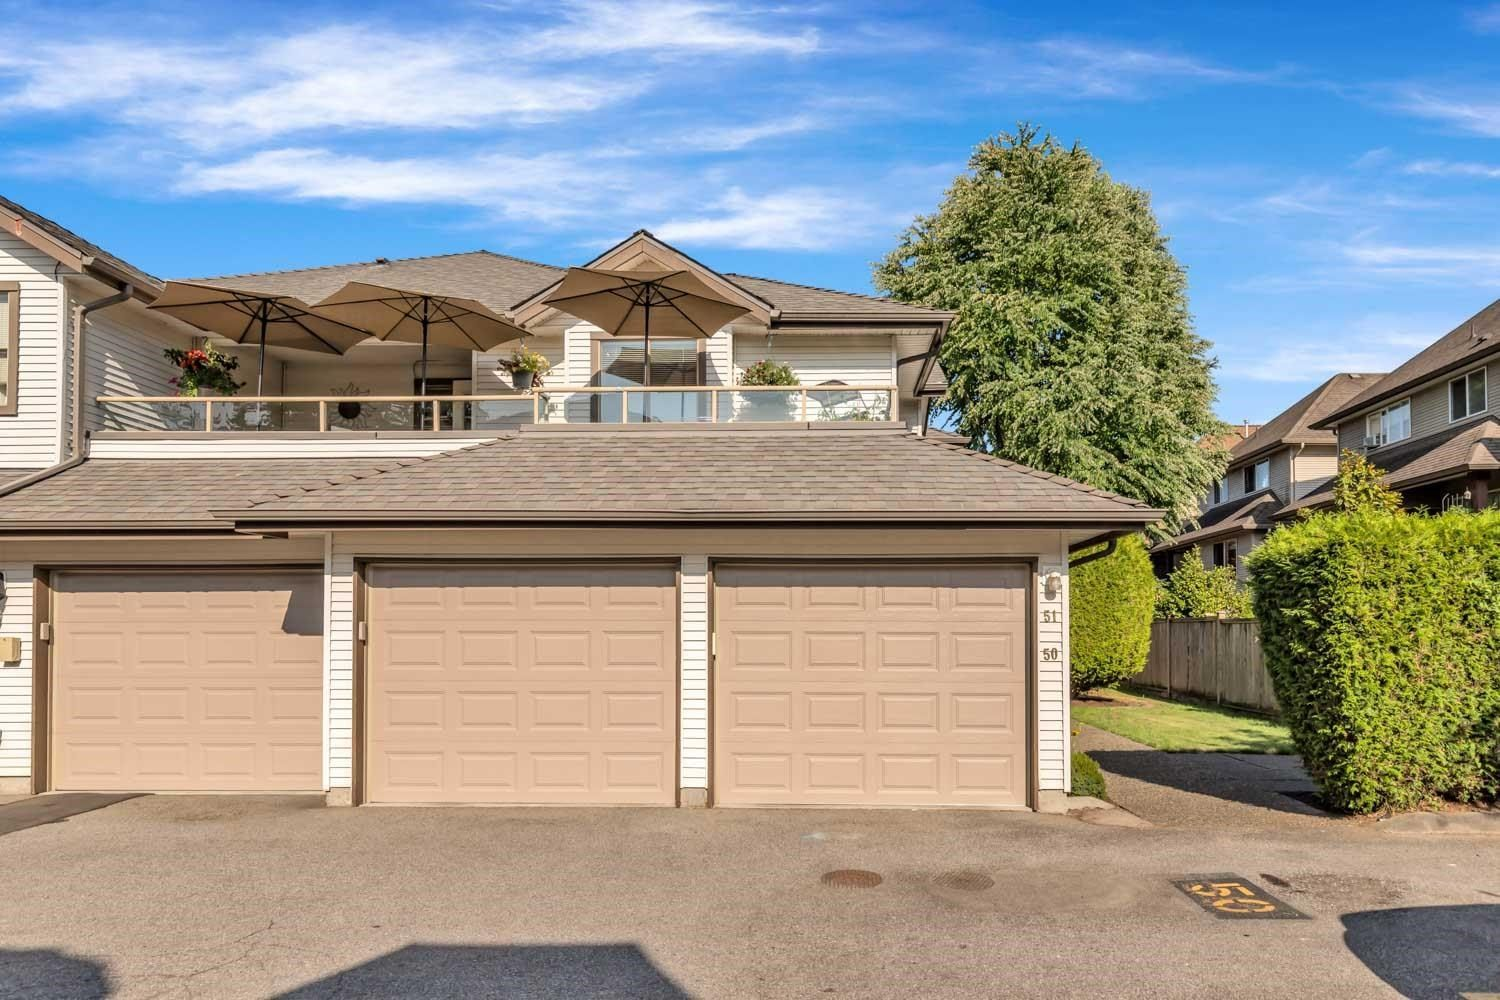 """Main Photo: 51 19160 119 Avenue in Pitt Meadows: Central Meadows Townhouse for sale in """"WINDSOR OAKS"""" : MLS®# R2605779"""